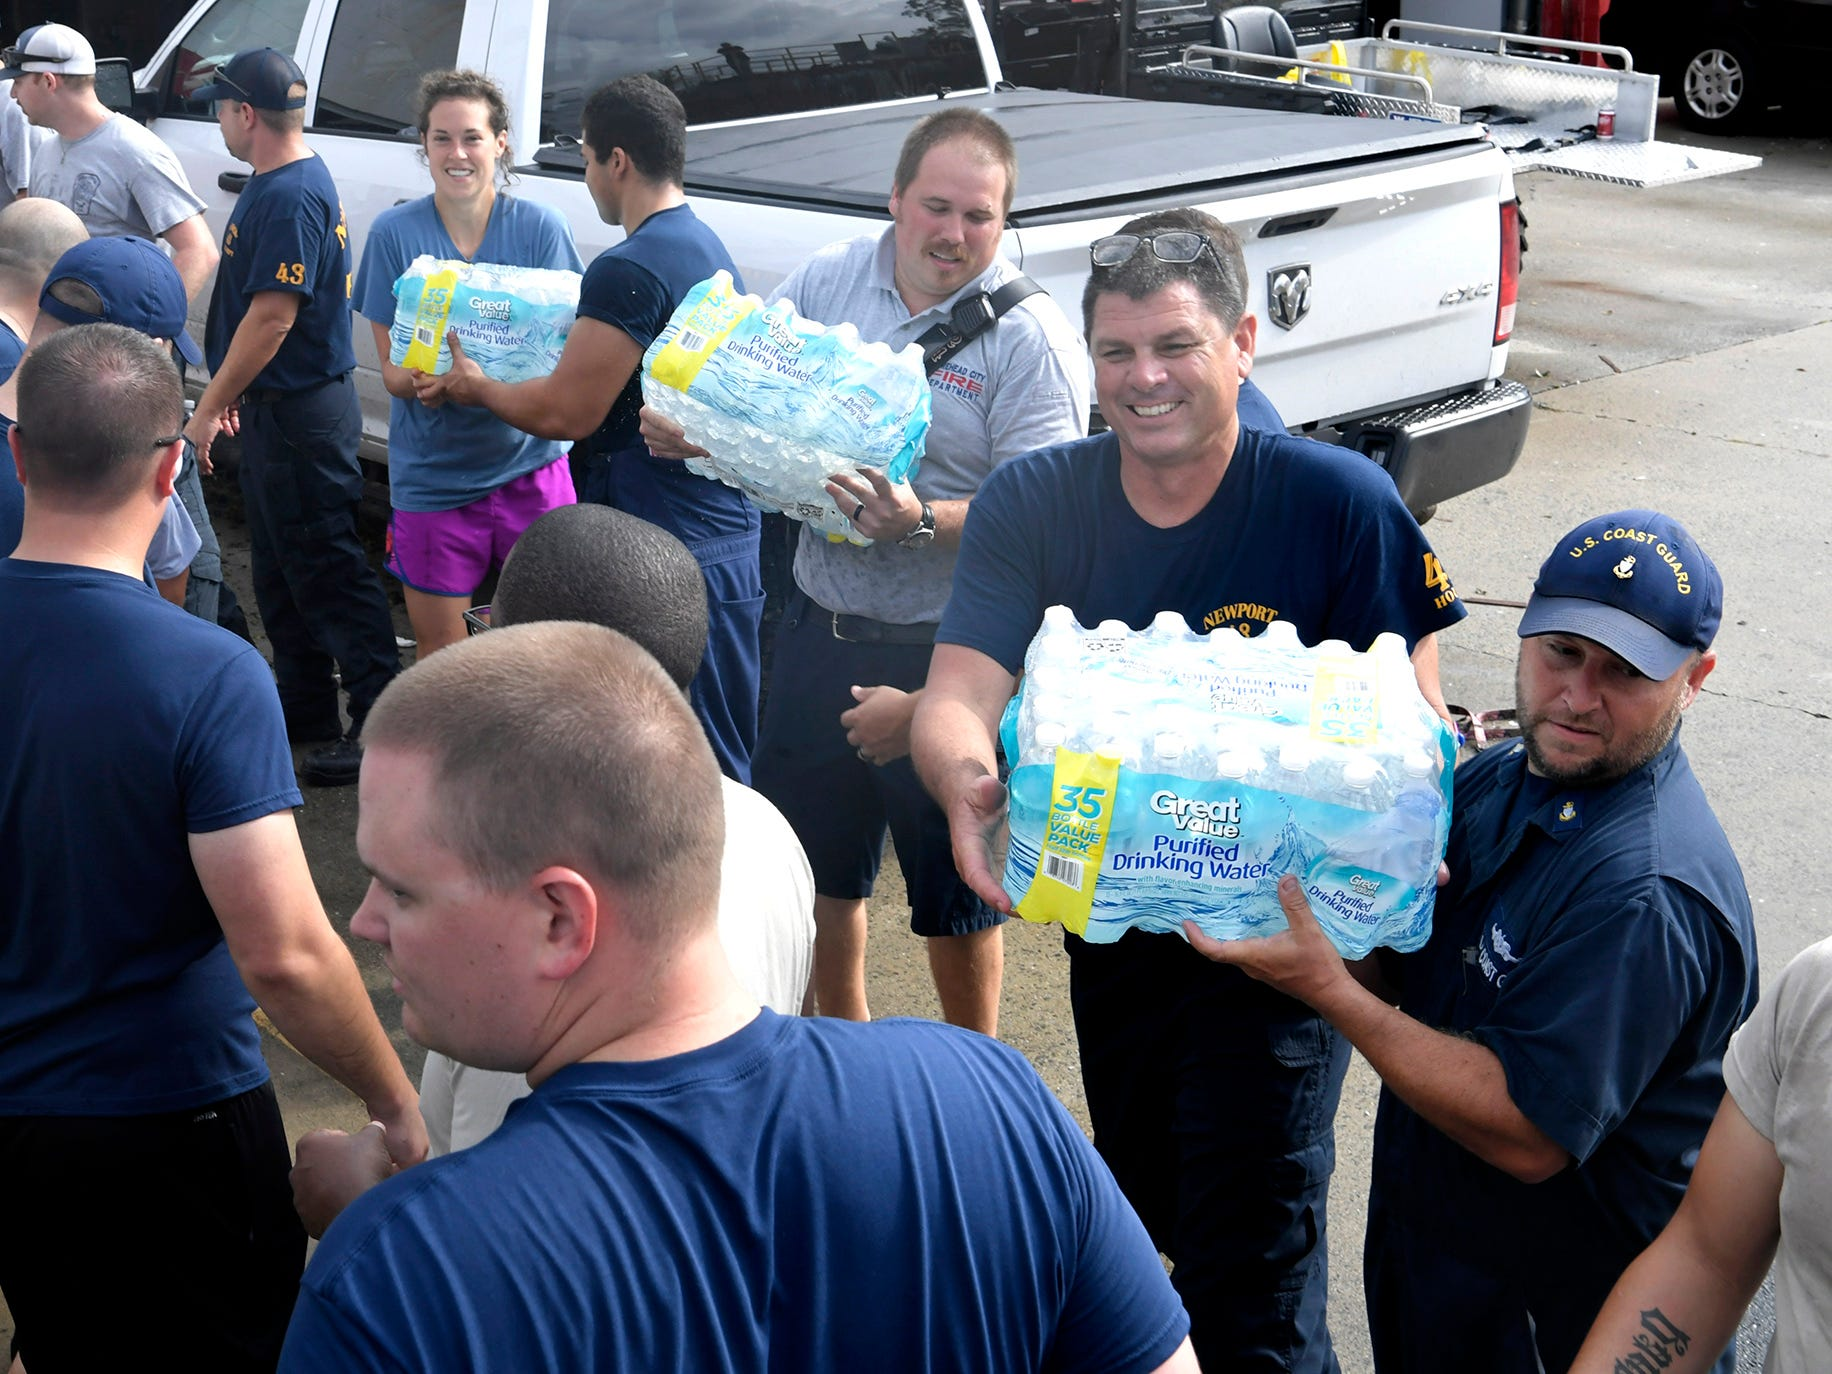 Newport firefighters and Coast Guard personnel help load bottled water at the Newport Fire Department on Monday, Sept. 17, 2018.